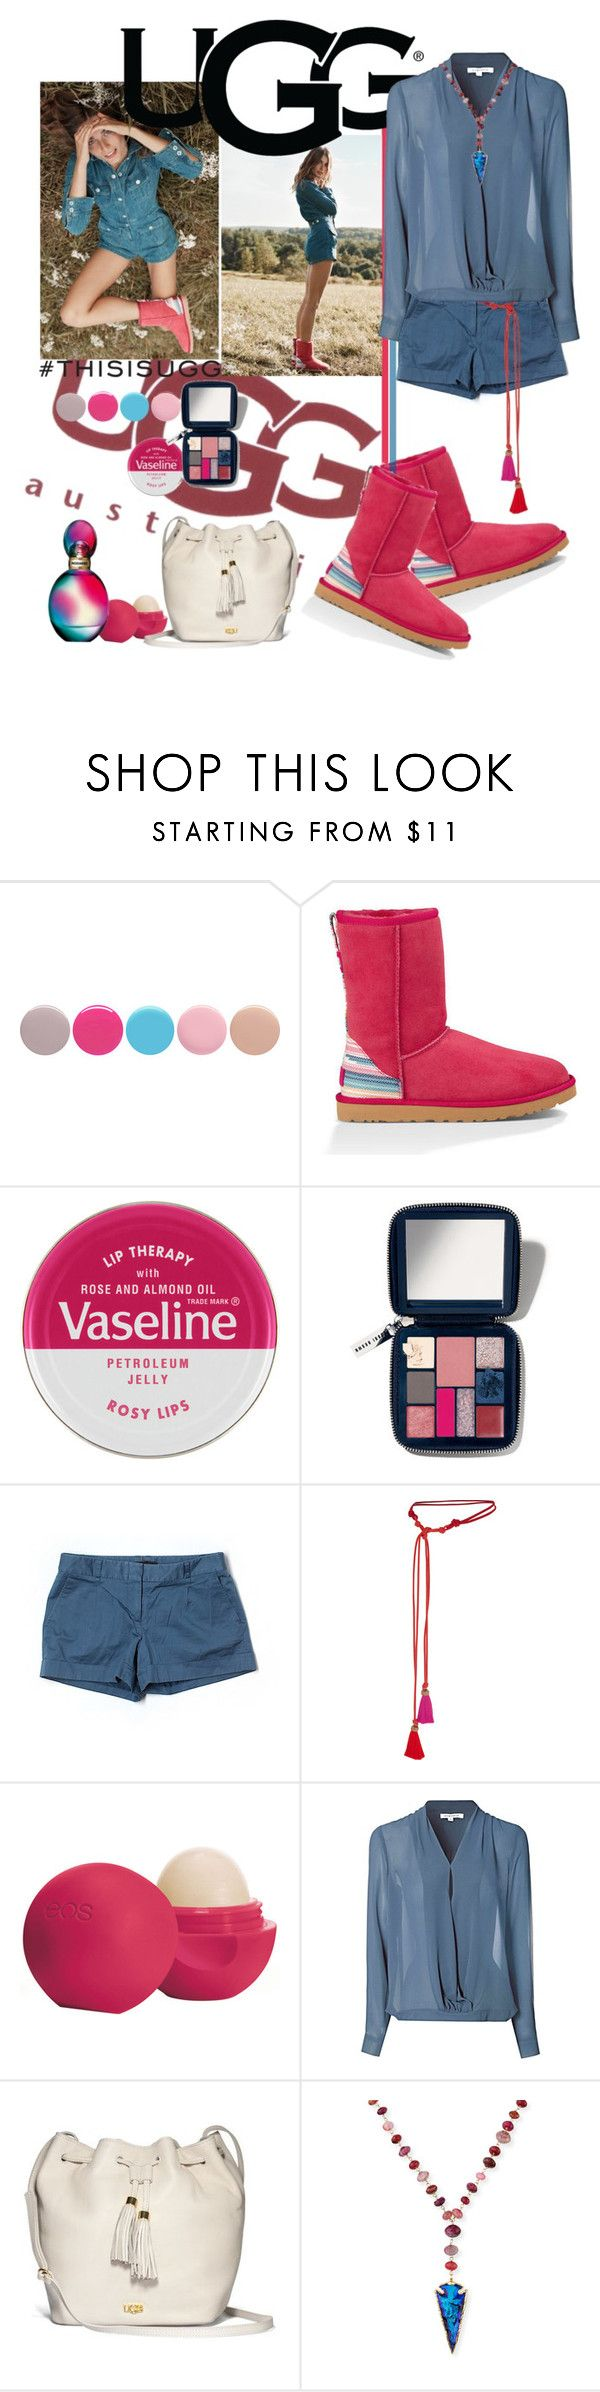 """Play With Prints In UGG: Contest Entry"" by iraavalon on Polyvore featuring UGG Australia, Nails Inc., Therapy, Bobbi Brown Cosmetics, BCBGMAXAZRIA, Lanvin, Eos, Glamorous, Devon Leigh and Missoni"